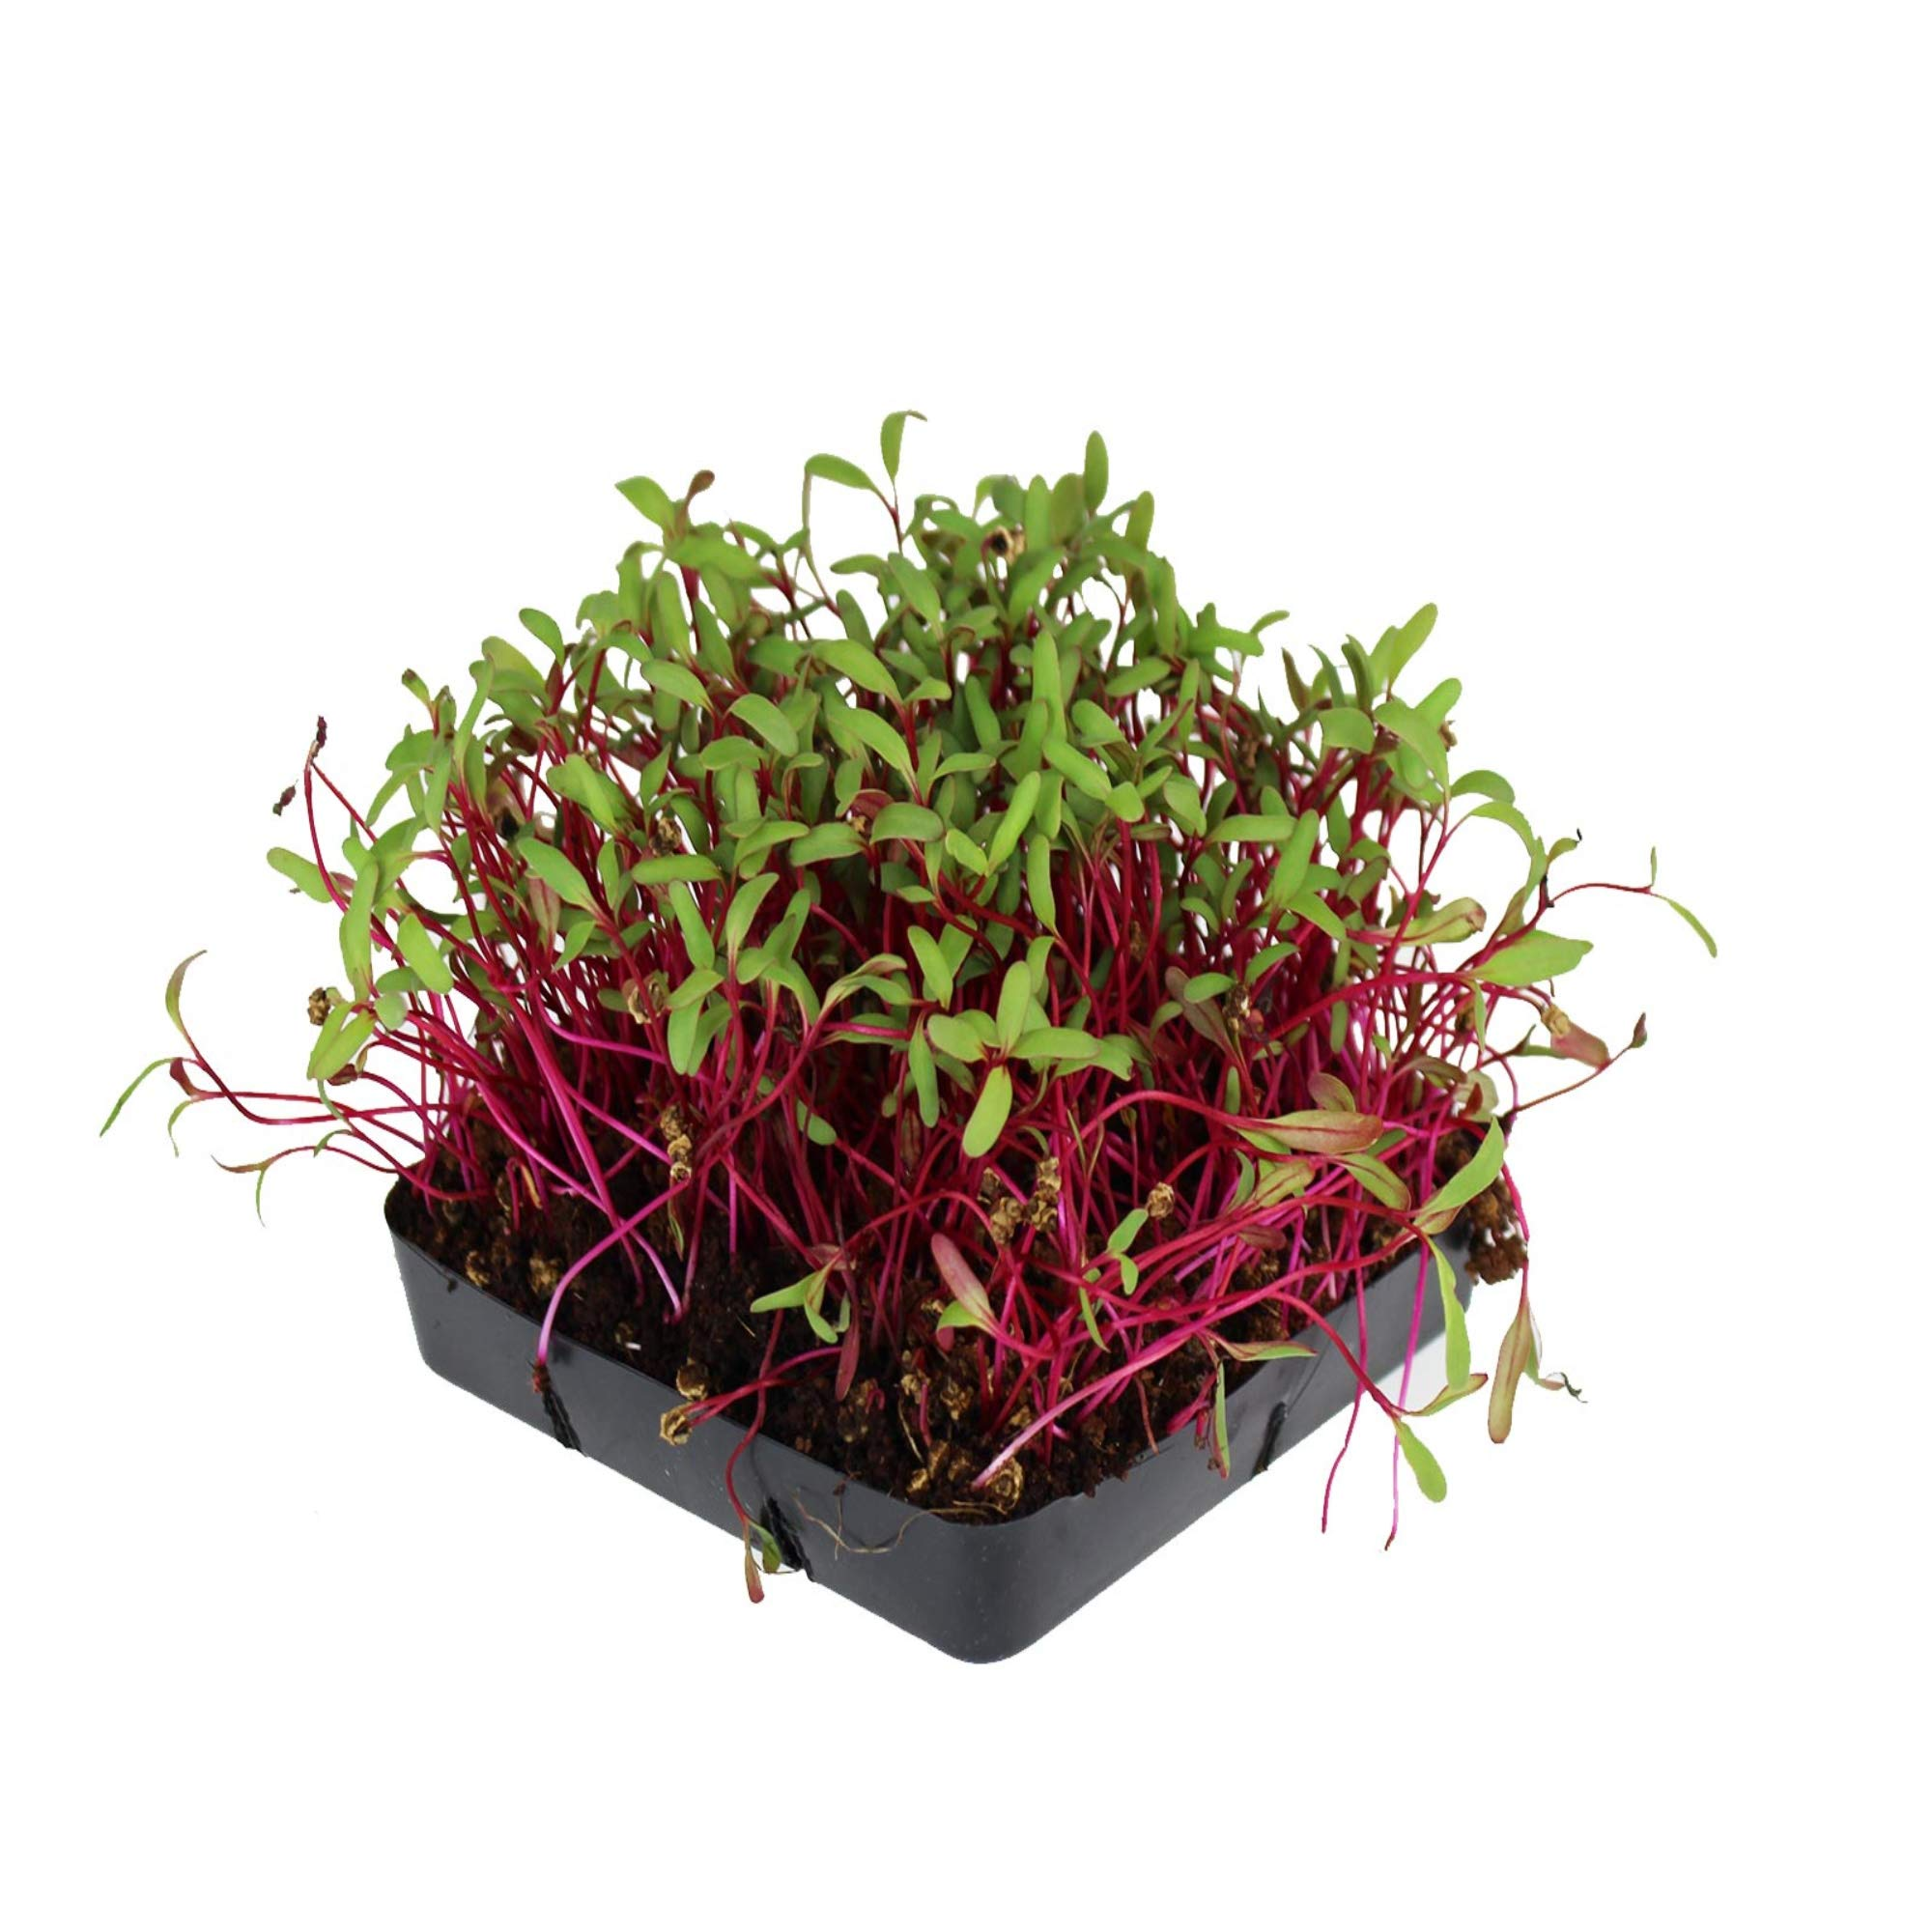 Detroit Dark Red Beet Seeds - Non-GMO Bulk Heirloom Seed for Growing Microgreens, Vegetable Gardening, Garden Salad Garnishes, More (5 Lb) by Mountain Valley Seed Company